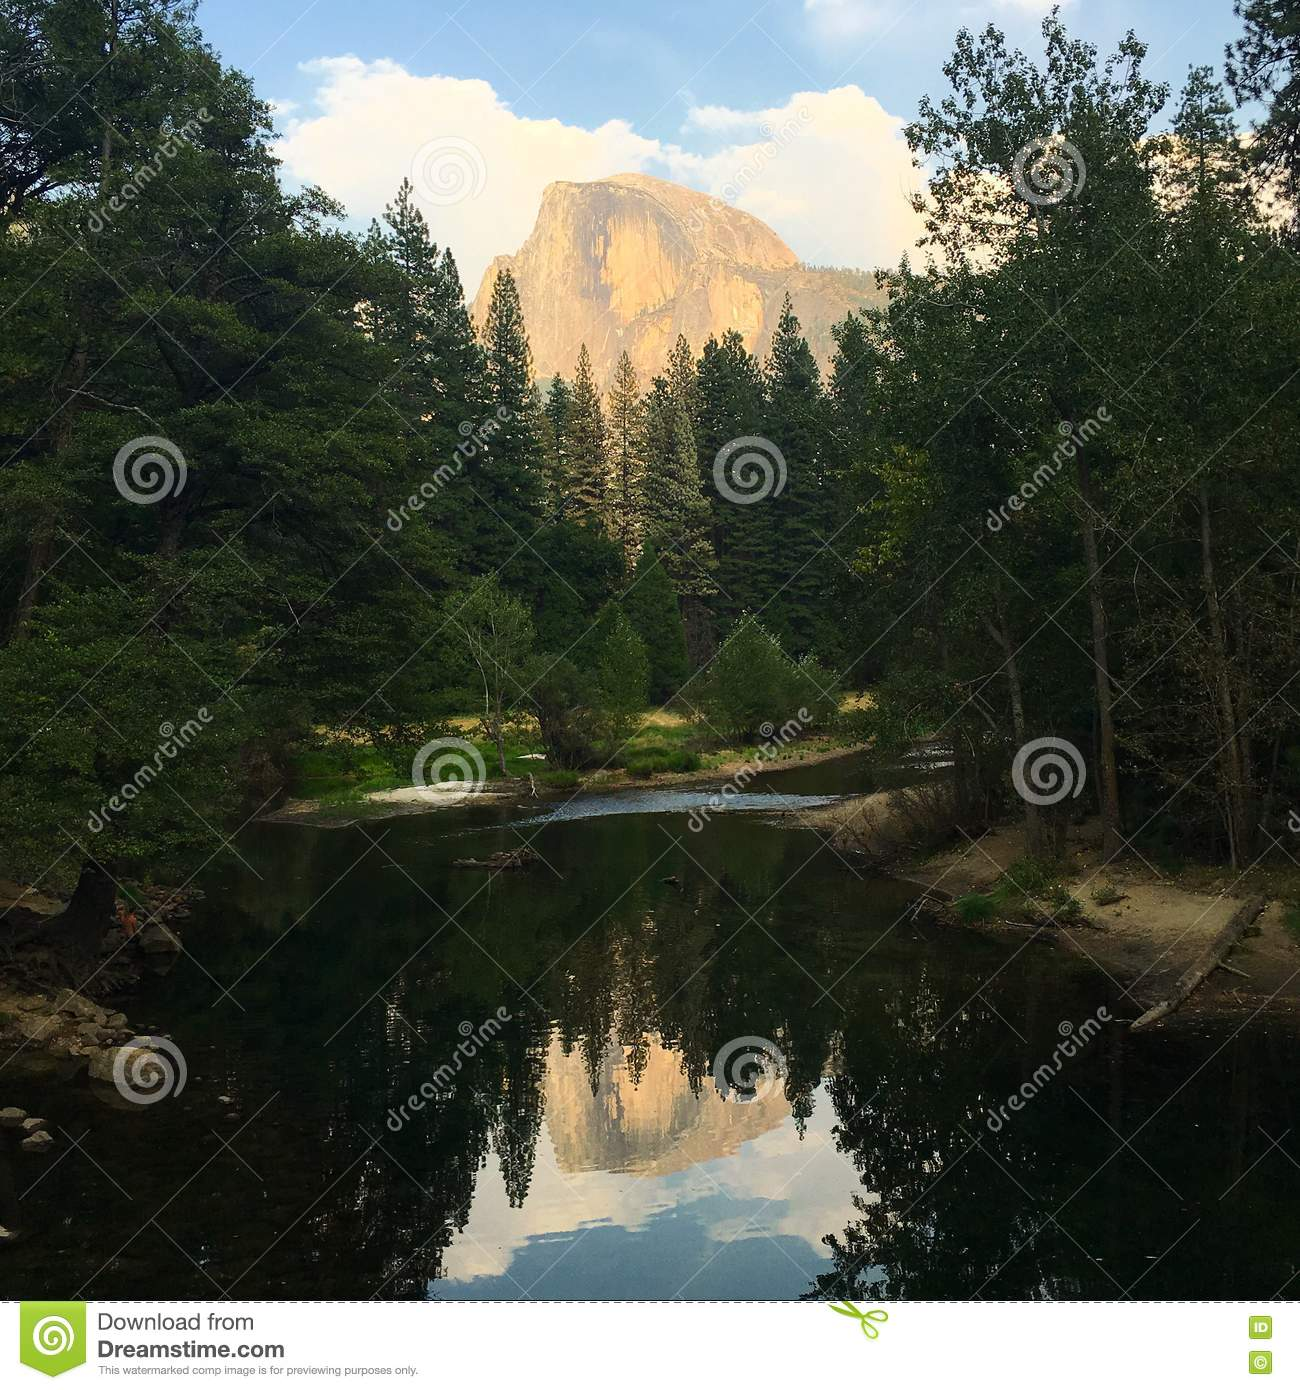 Download Half Dome Reflection stock image. Image of woods, exterior - 78474129